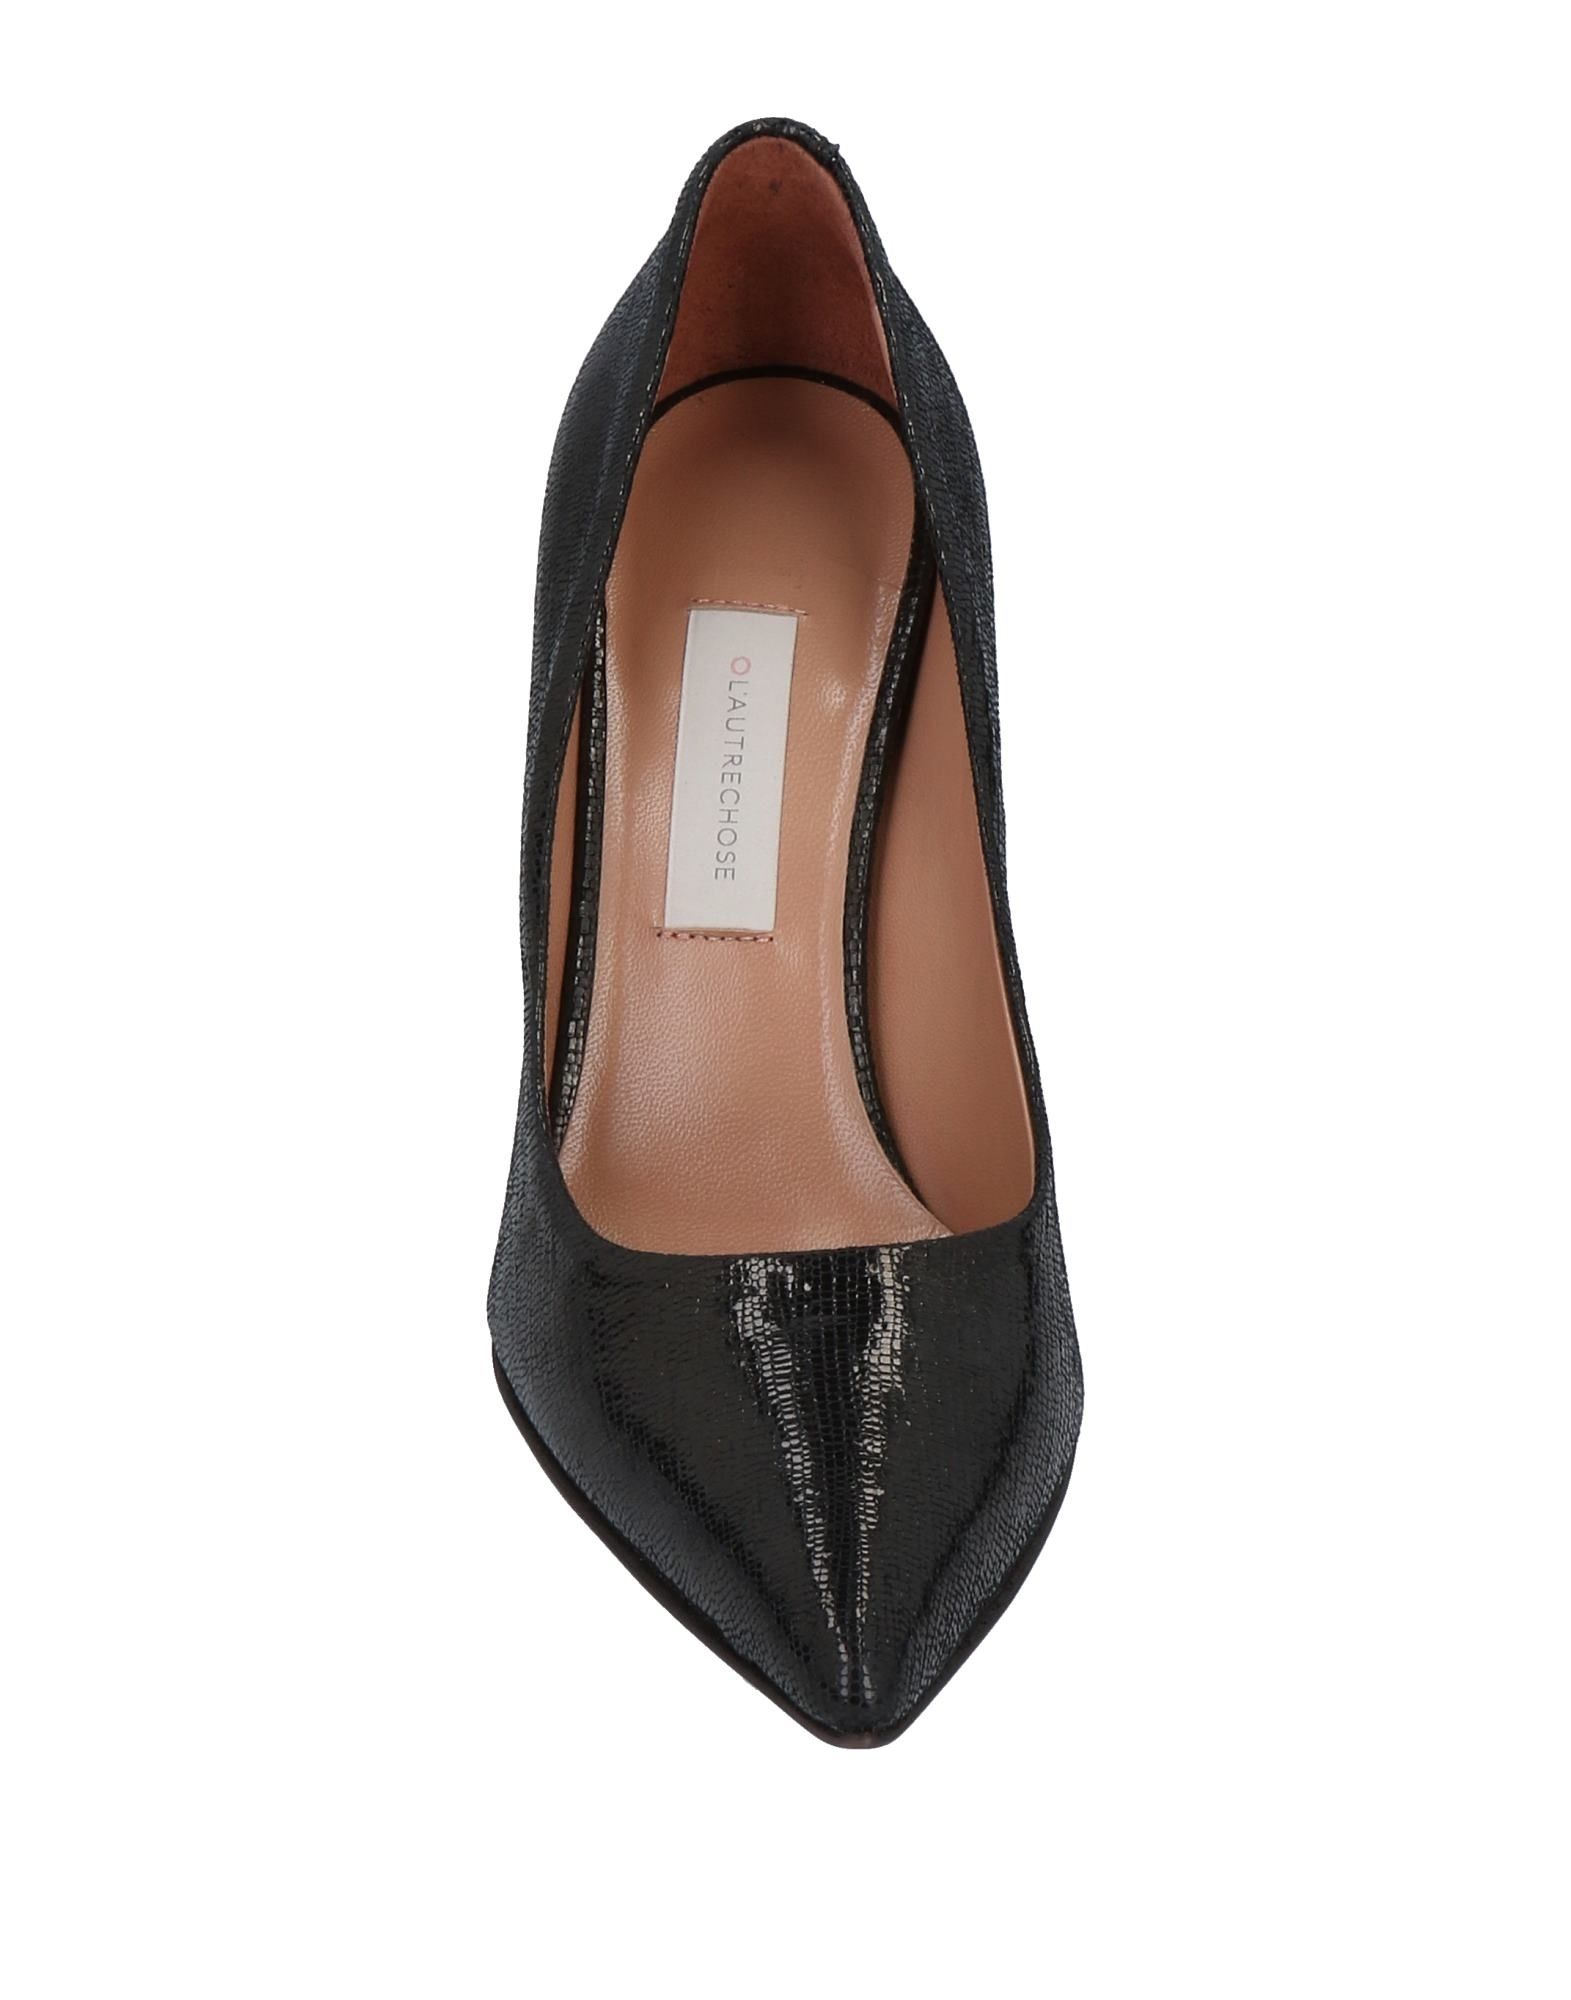 Stilvolle billige Pumps Schuhe L' Autre Chose Pumps billige Damen  11487424OE 802c19